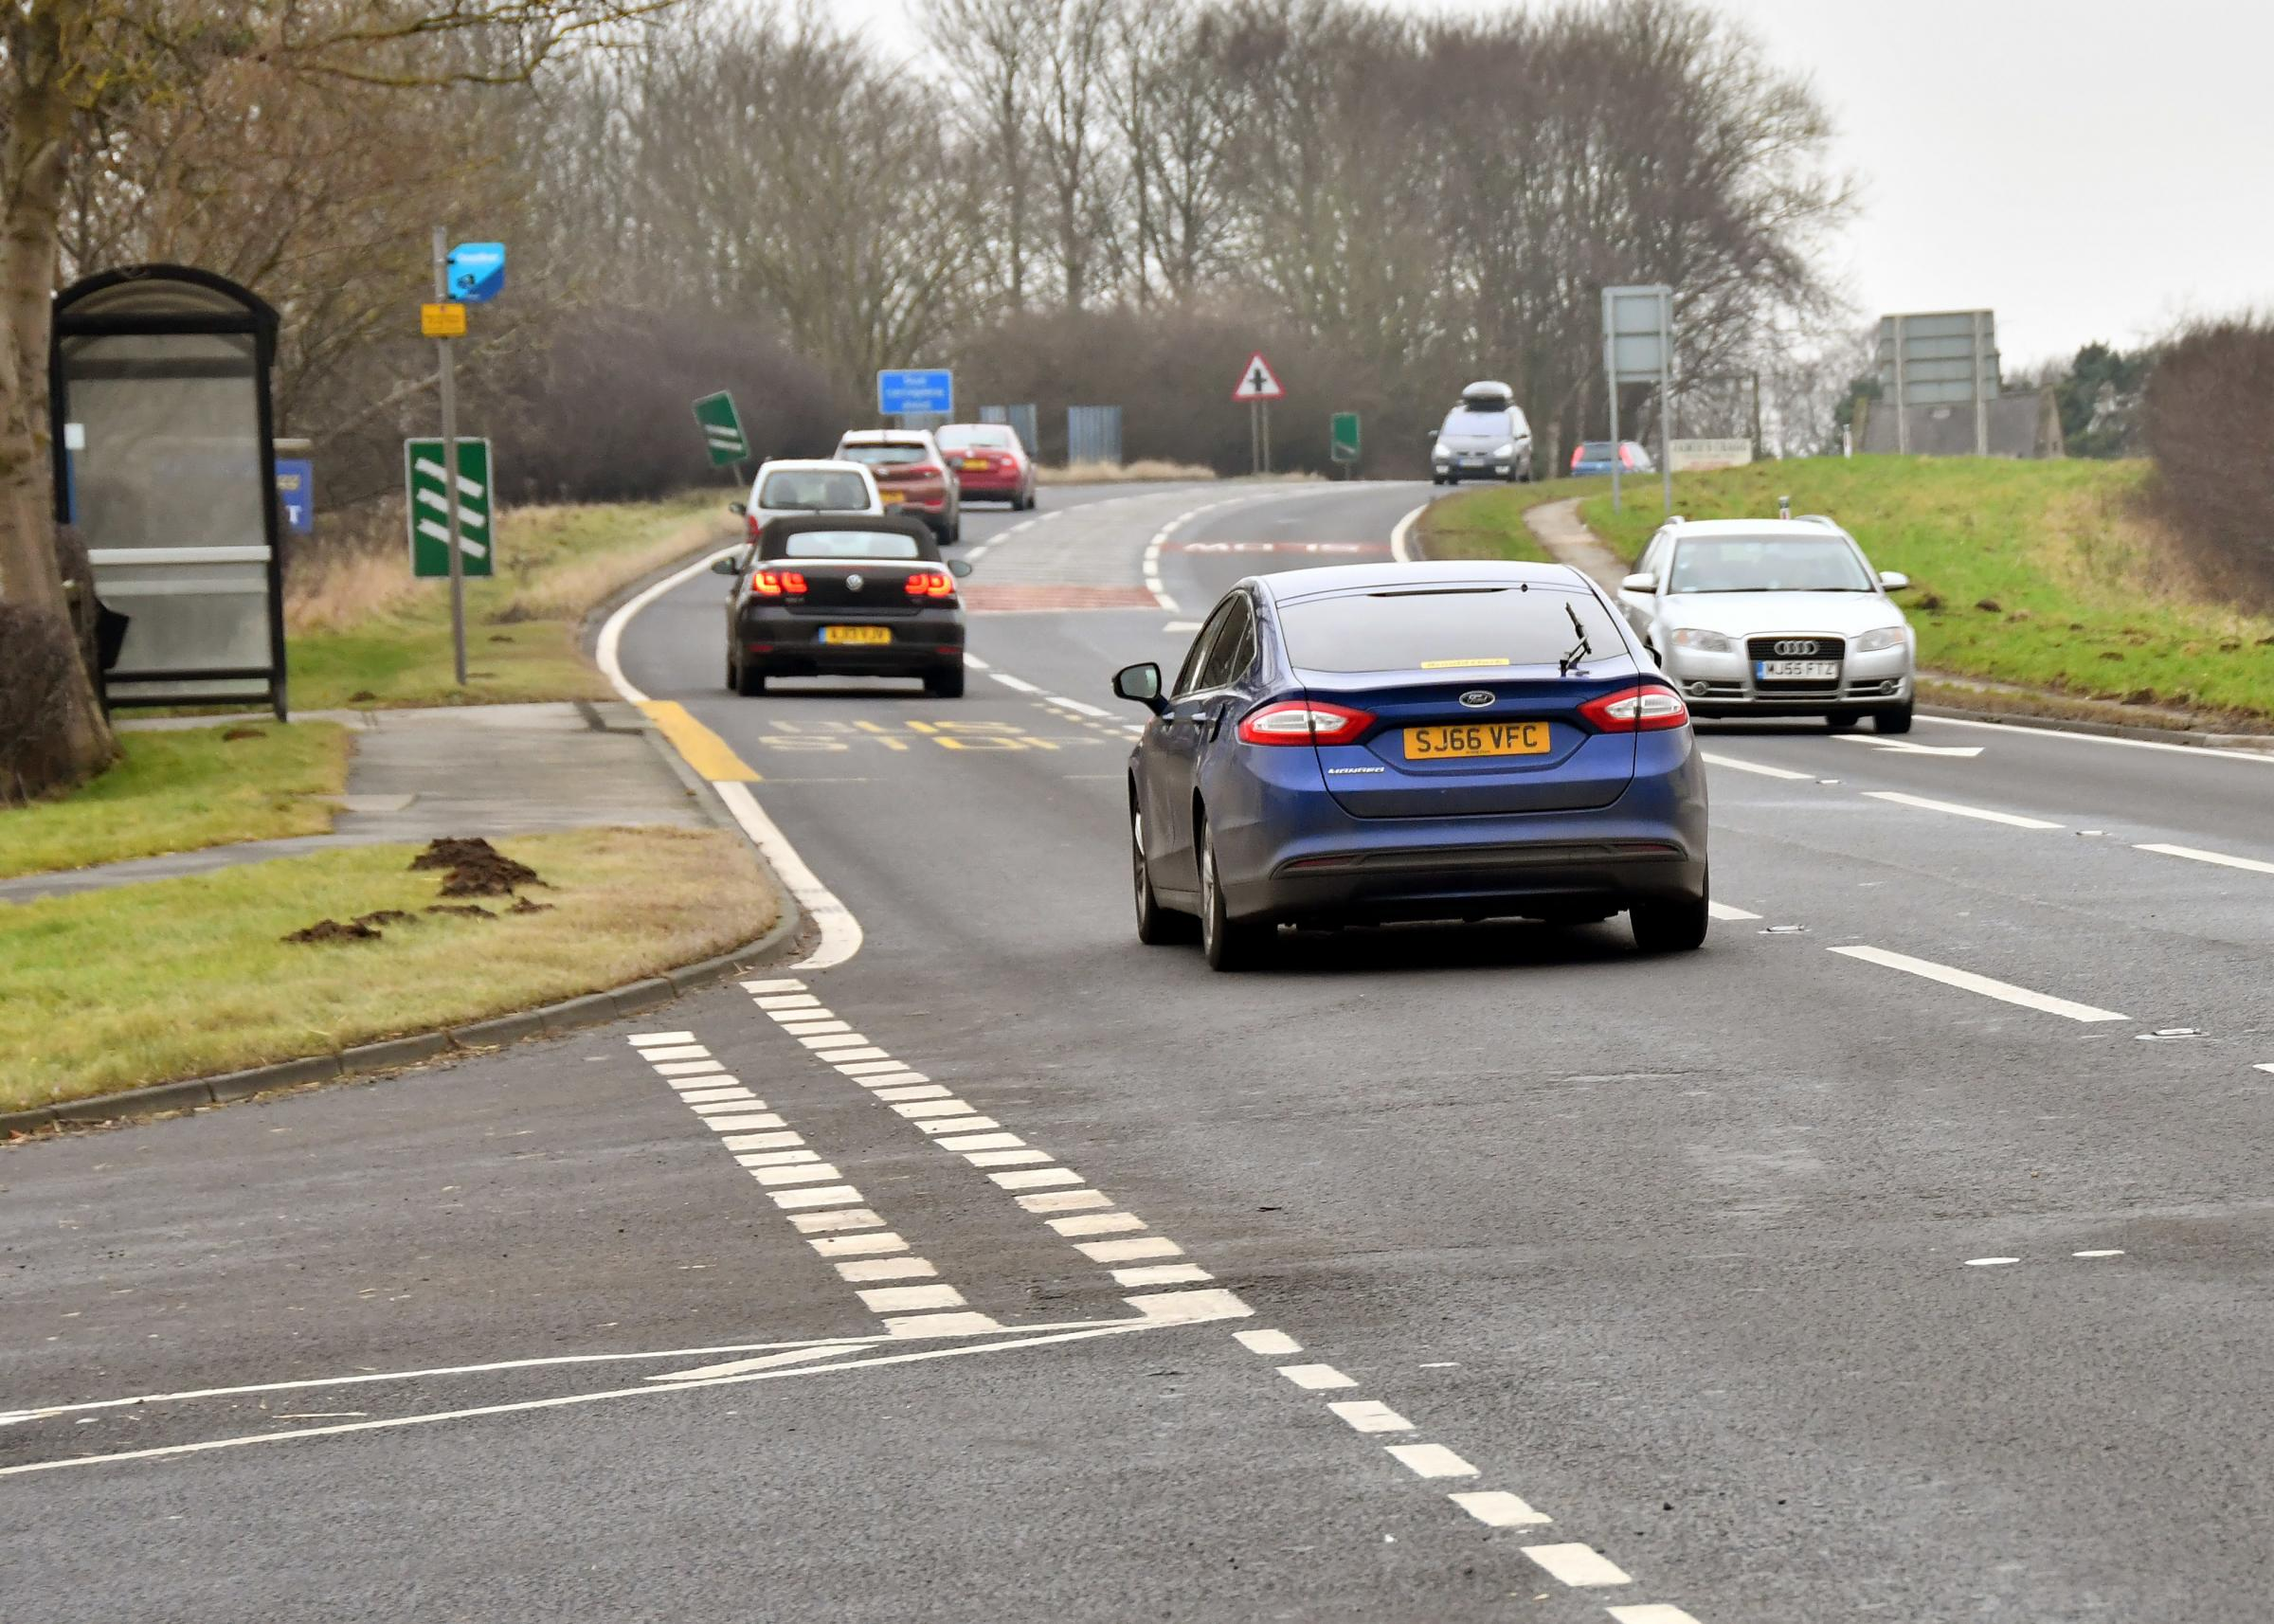 Campaigners have welcomed the news that new pedestrian refuges on the A64 are to go ahead